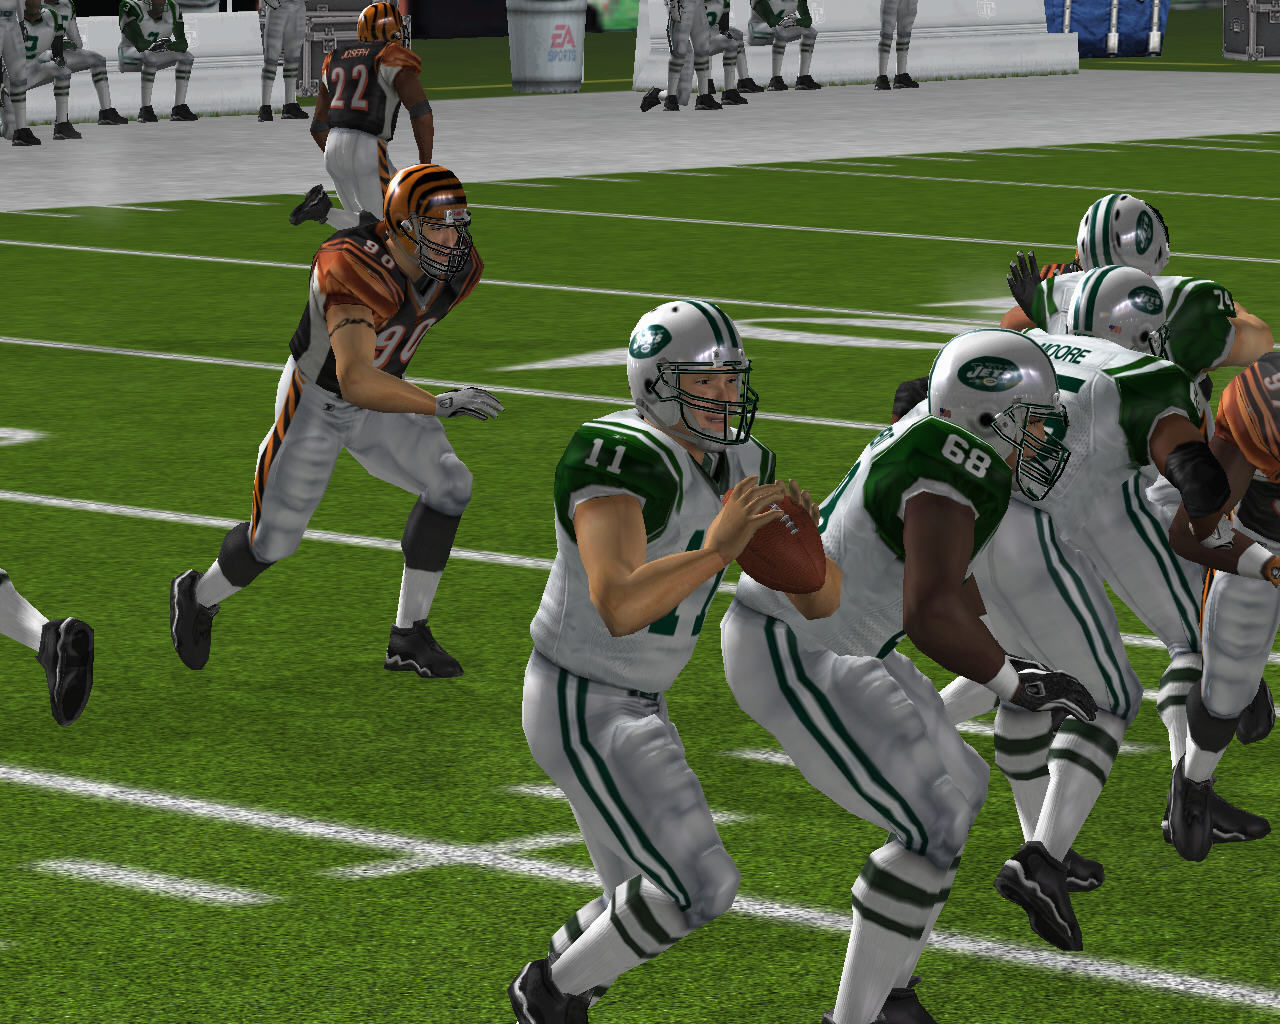 Madden NFL 08 Windows NY Jets player running with the ball